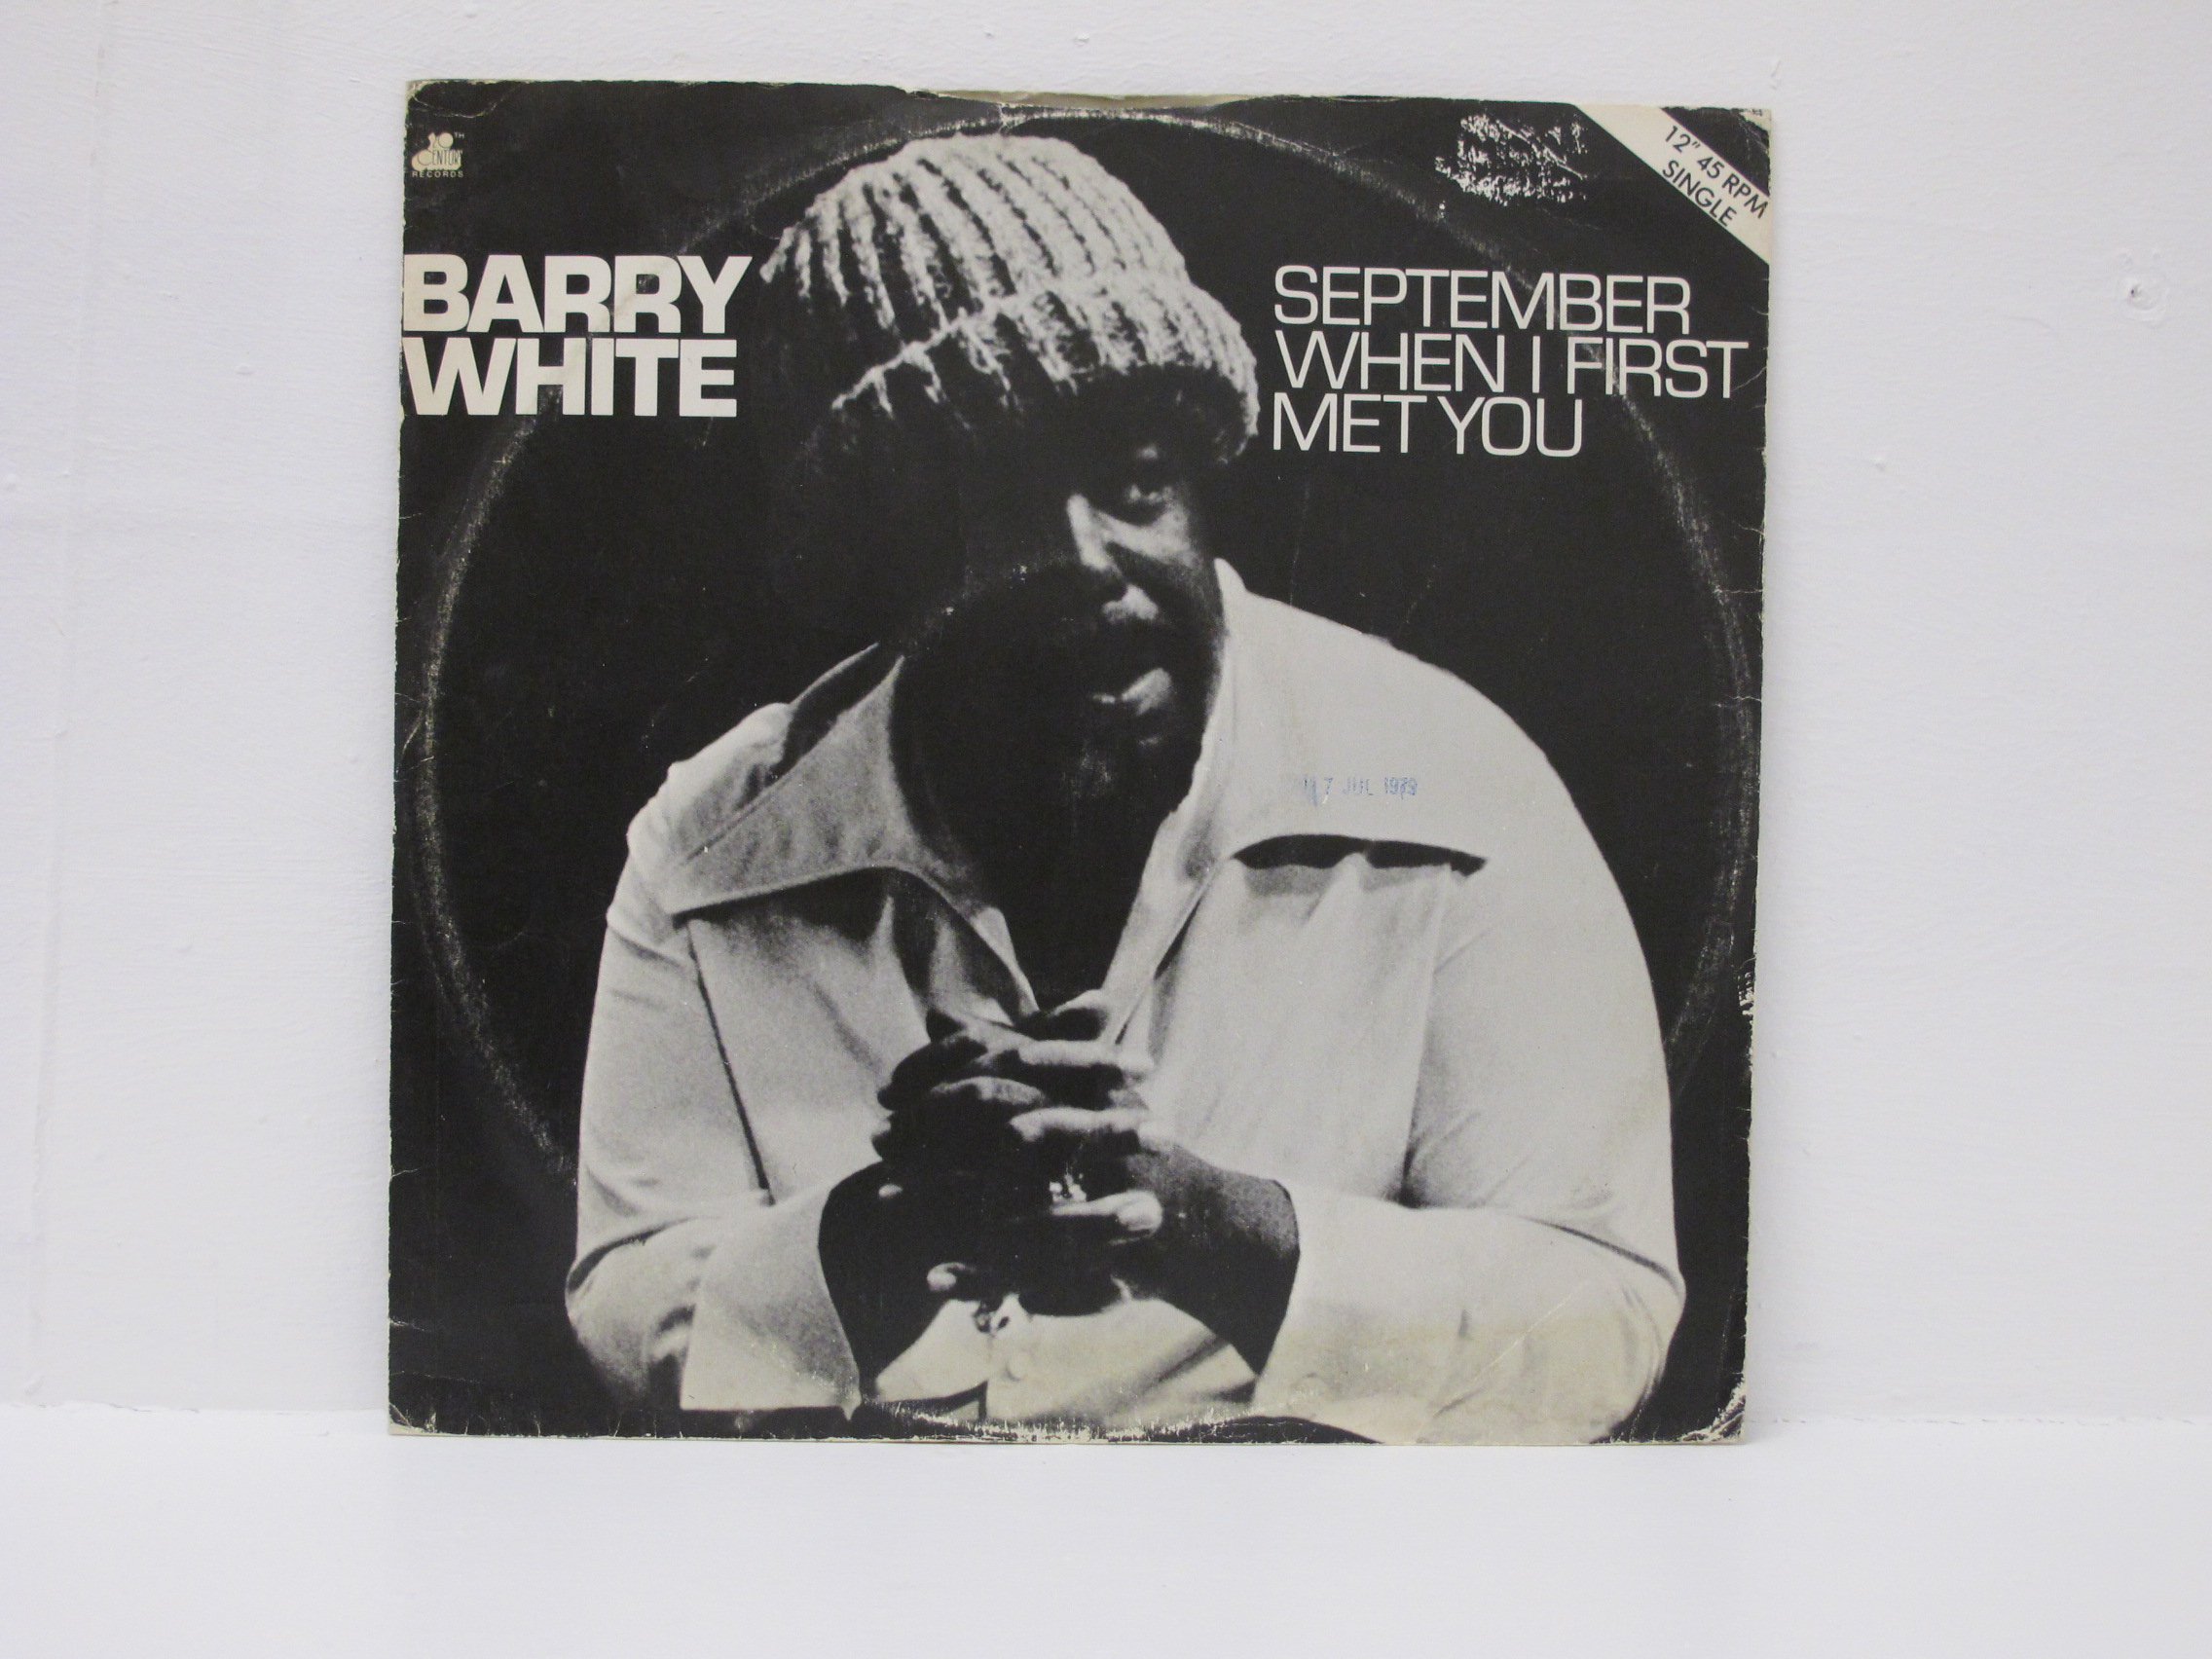 Barry White - September When I First Met You